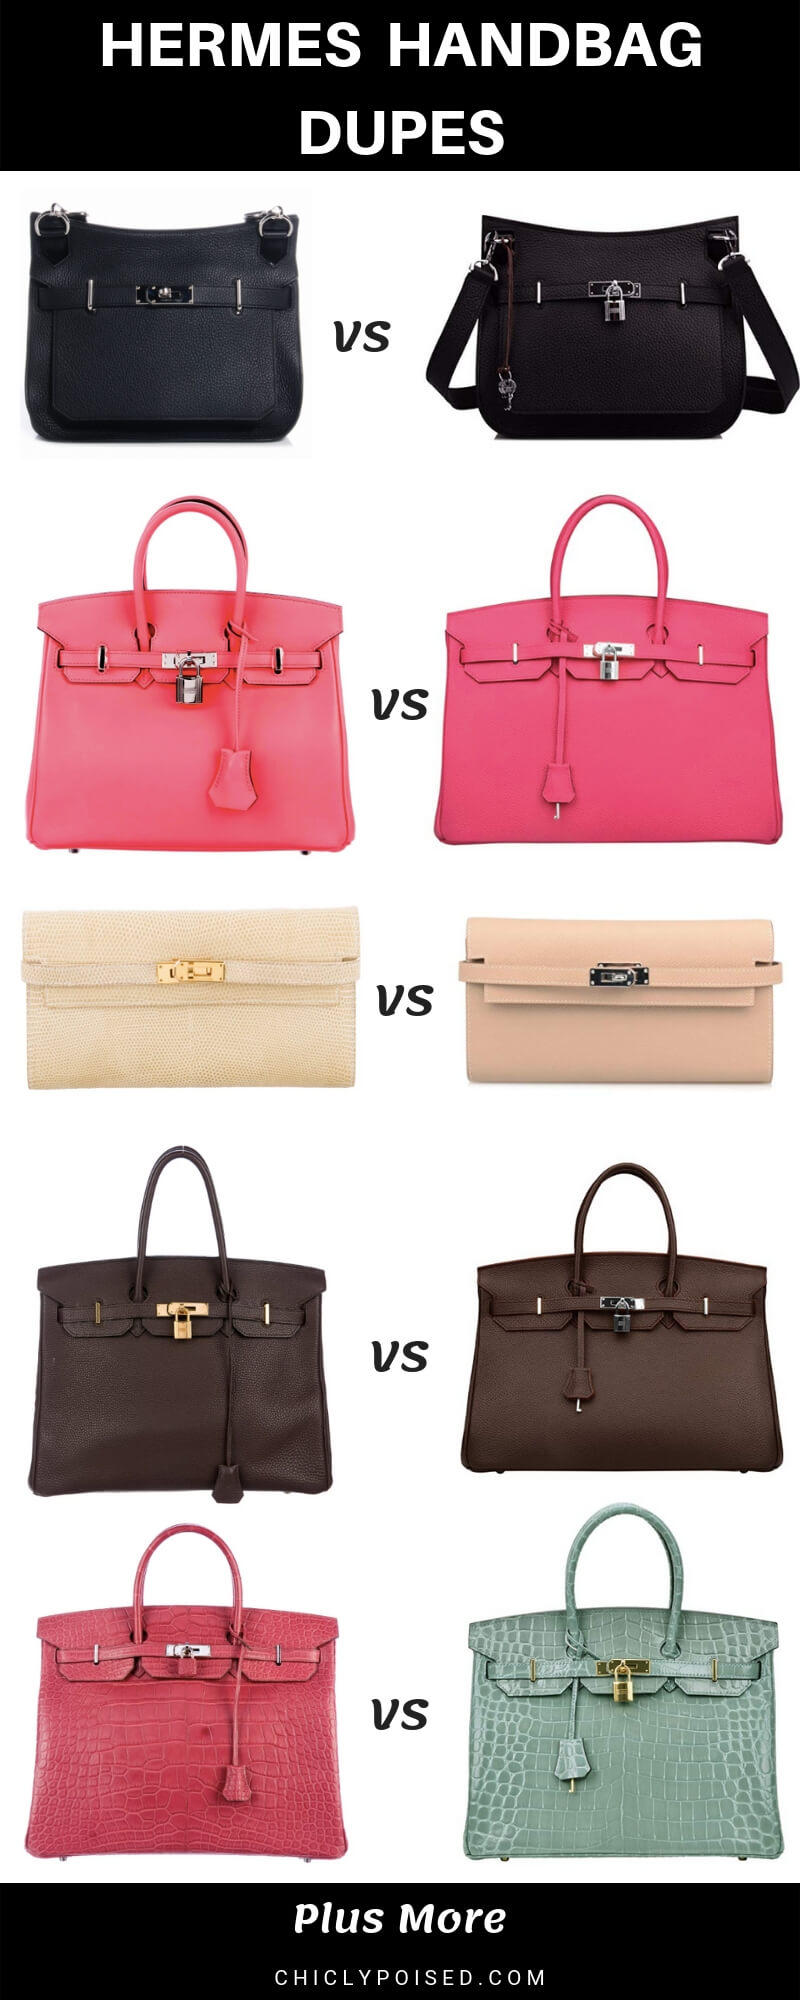 Hermes Bag Dupes